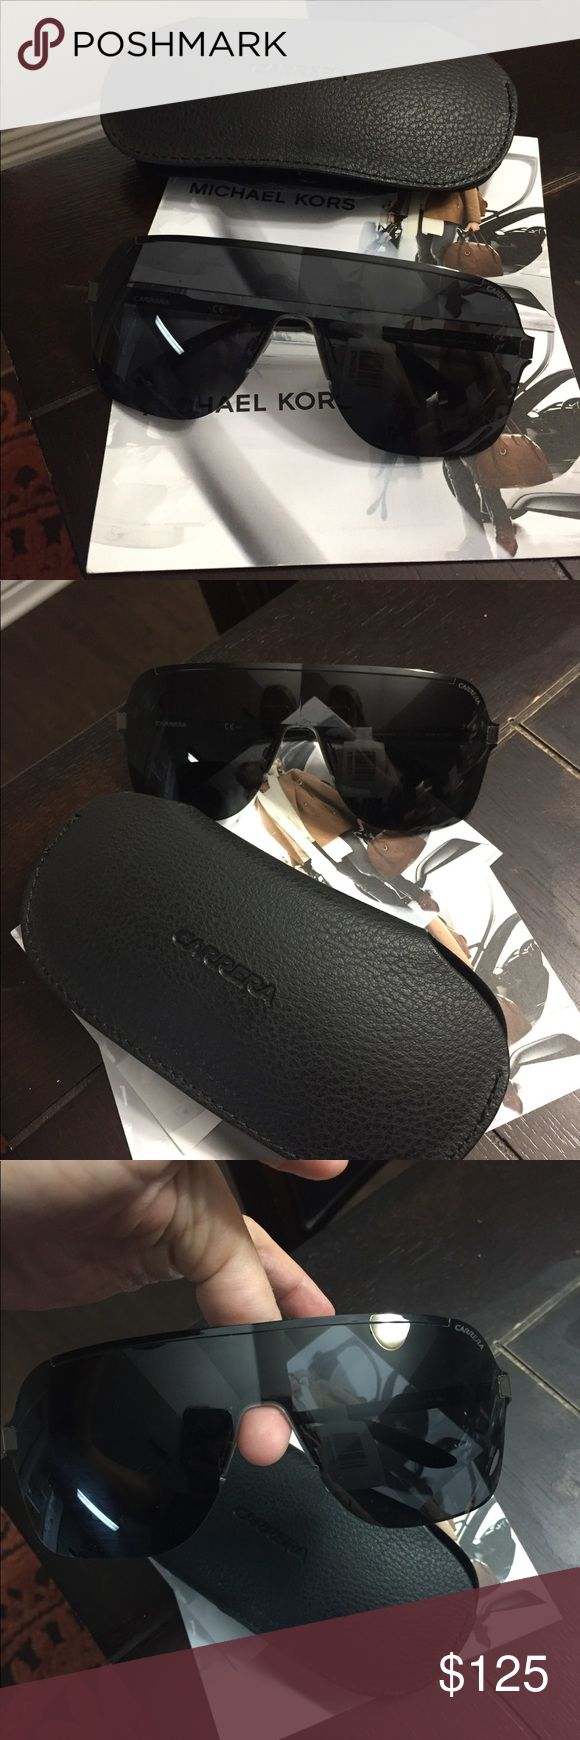 Brand New with tags Men's Carrera  Sunglasses Comes with case and cloth. Brand New and Authentic Carrera Accessories Sunglasses